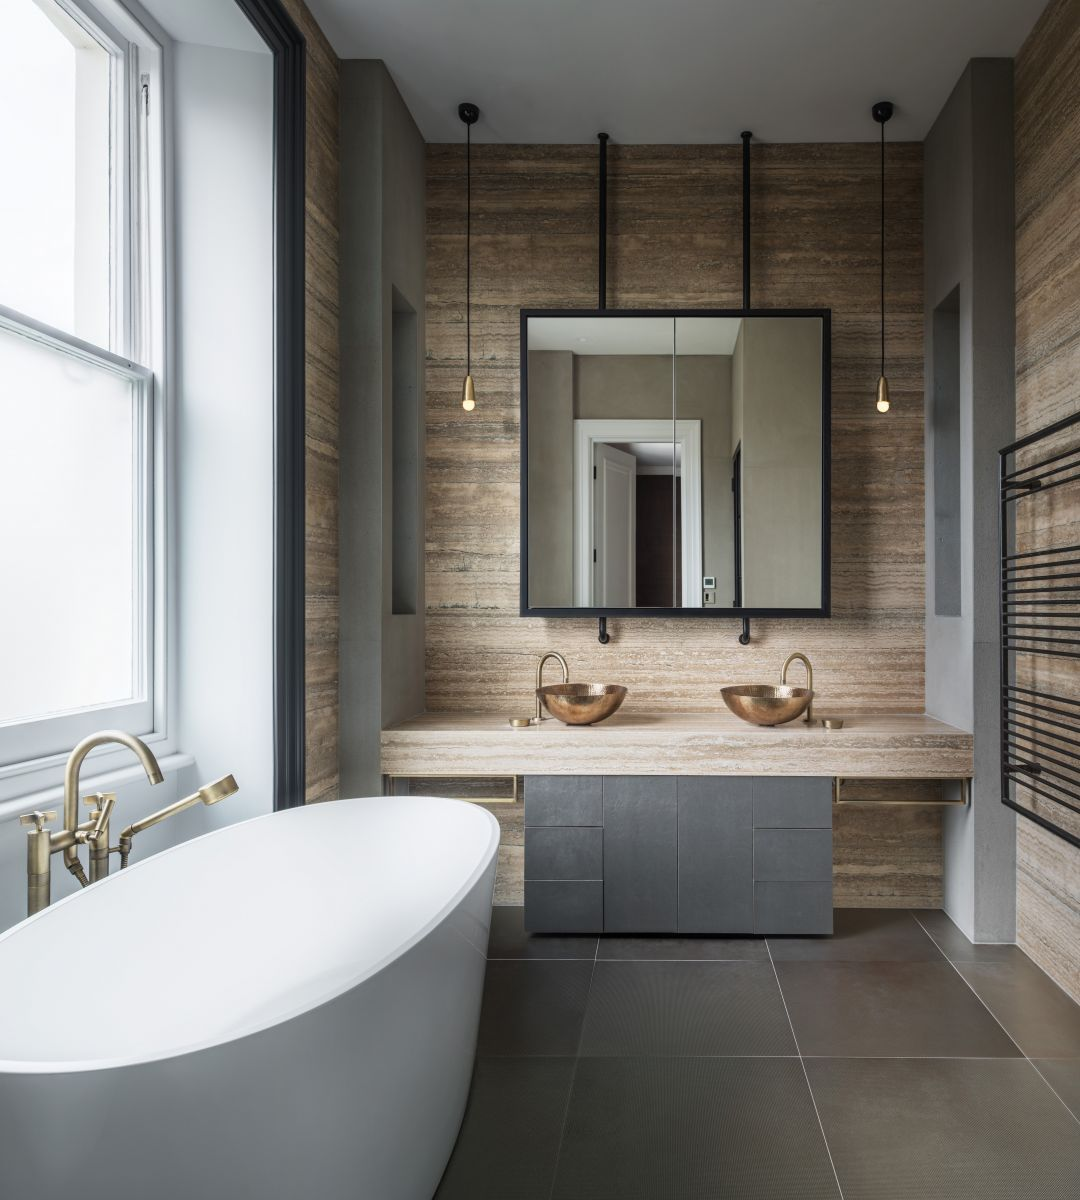 The London Bathroom Shown Here Is By Interior Designer Roselind Wilson It Features Taps By The